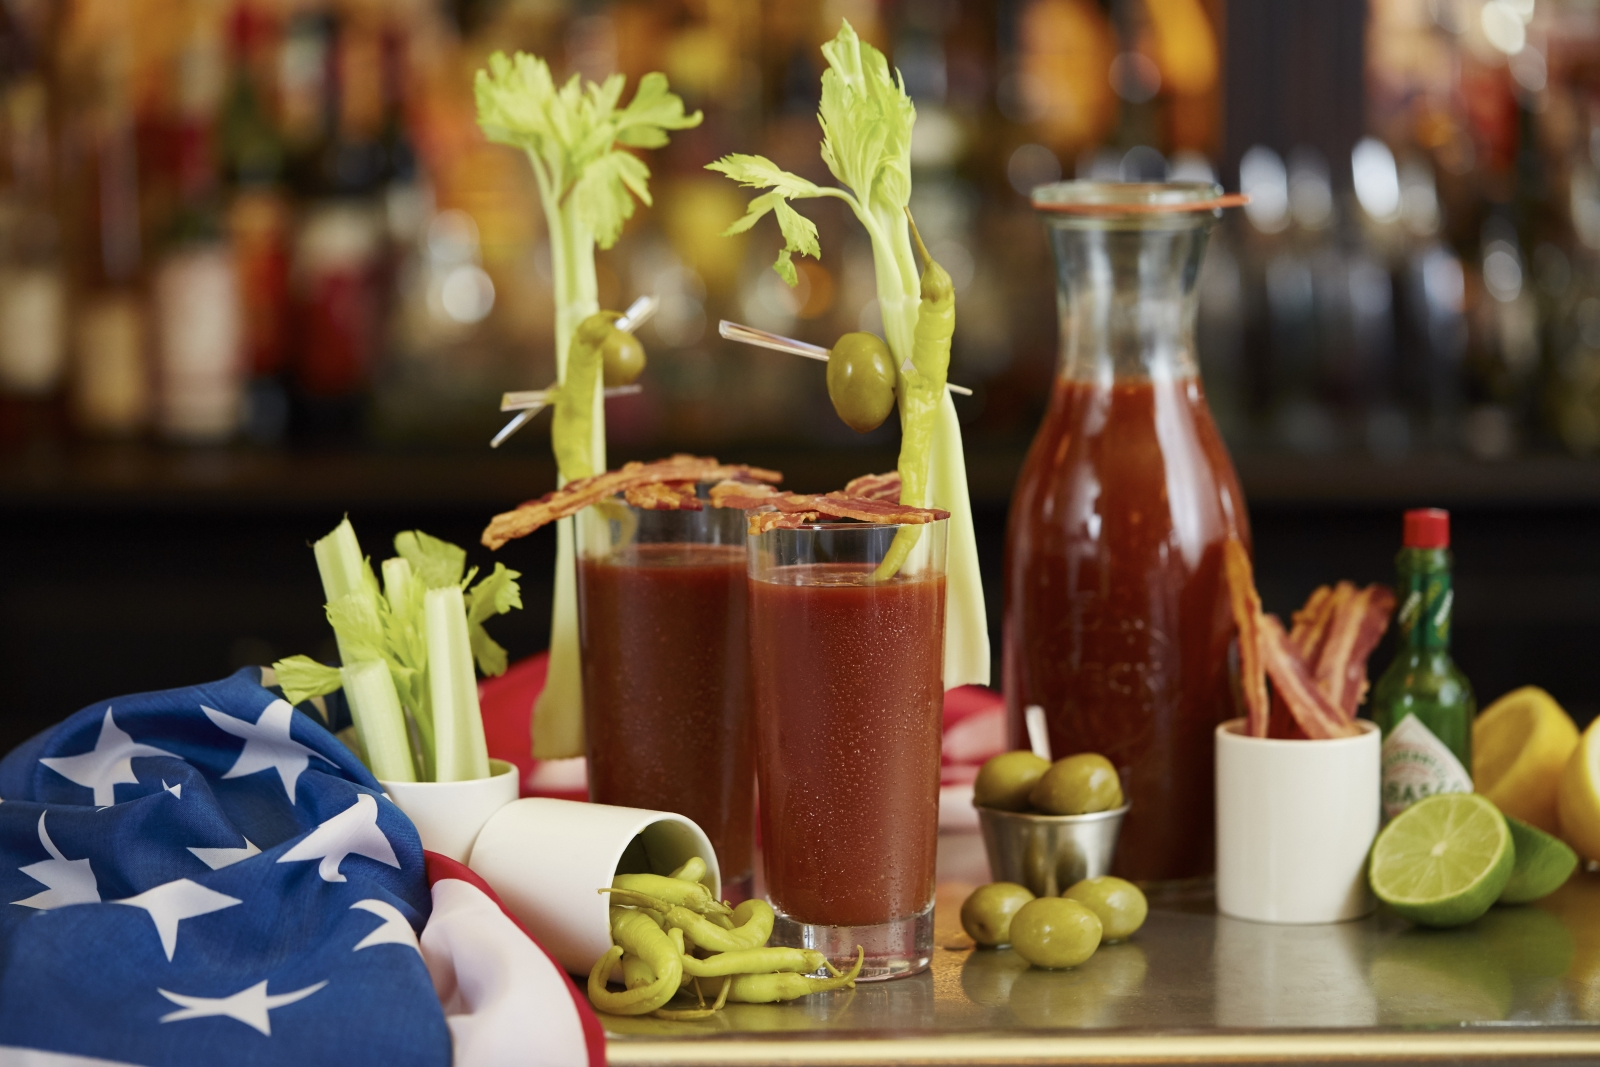 The Balthazar Bloody Mary